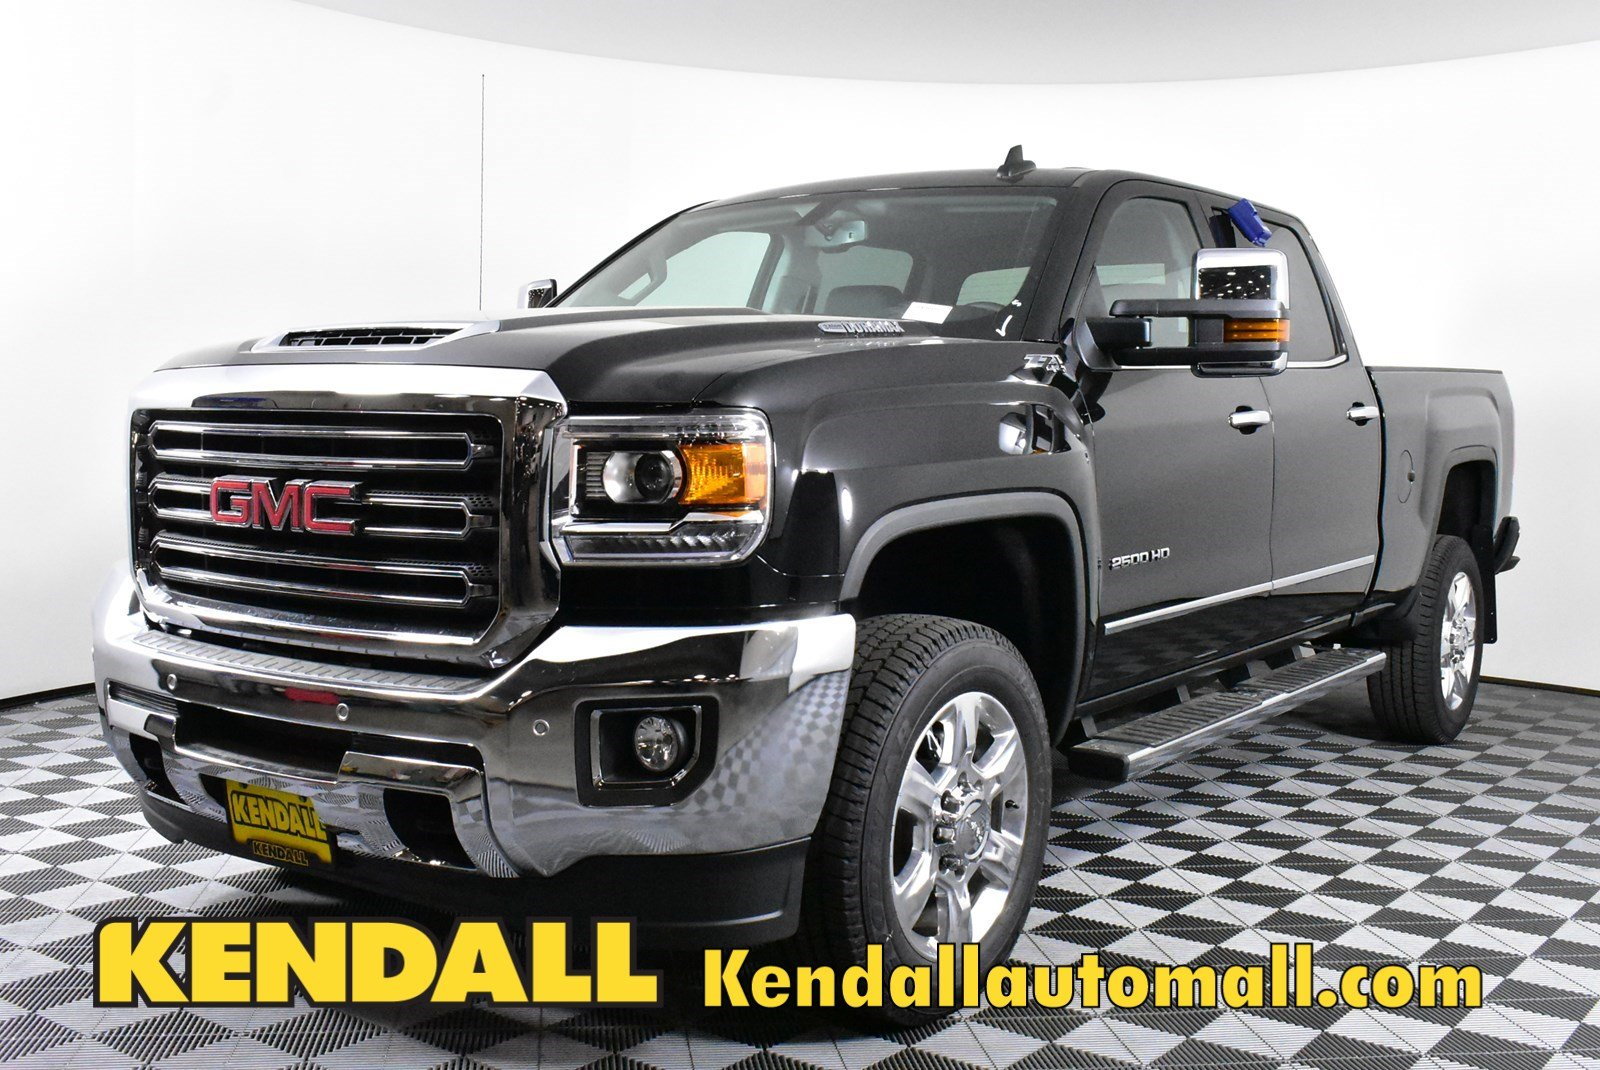 New 2019 Gmc Sierra 2500hd Slt 4wd In Nampa D490055 Kendall At The Idaho Center Auto Mall